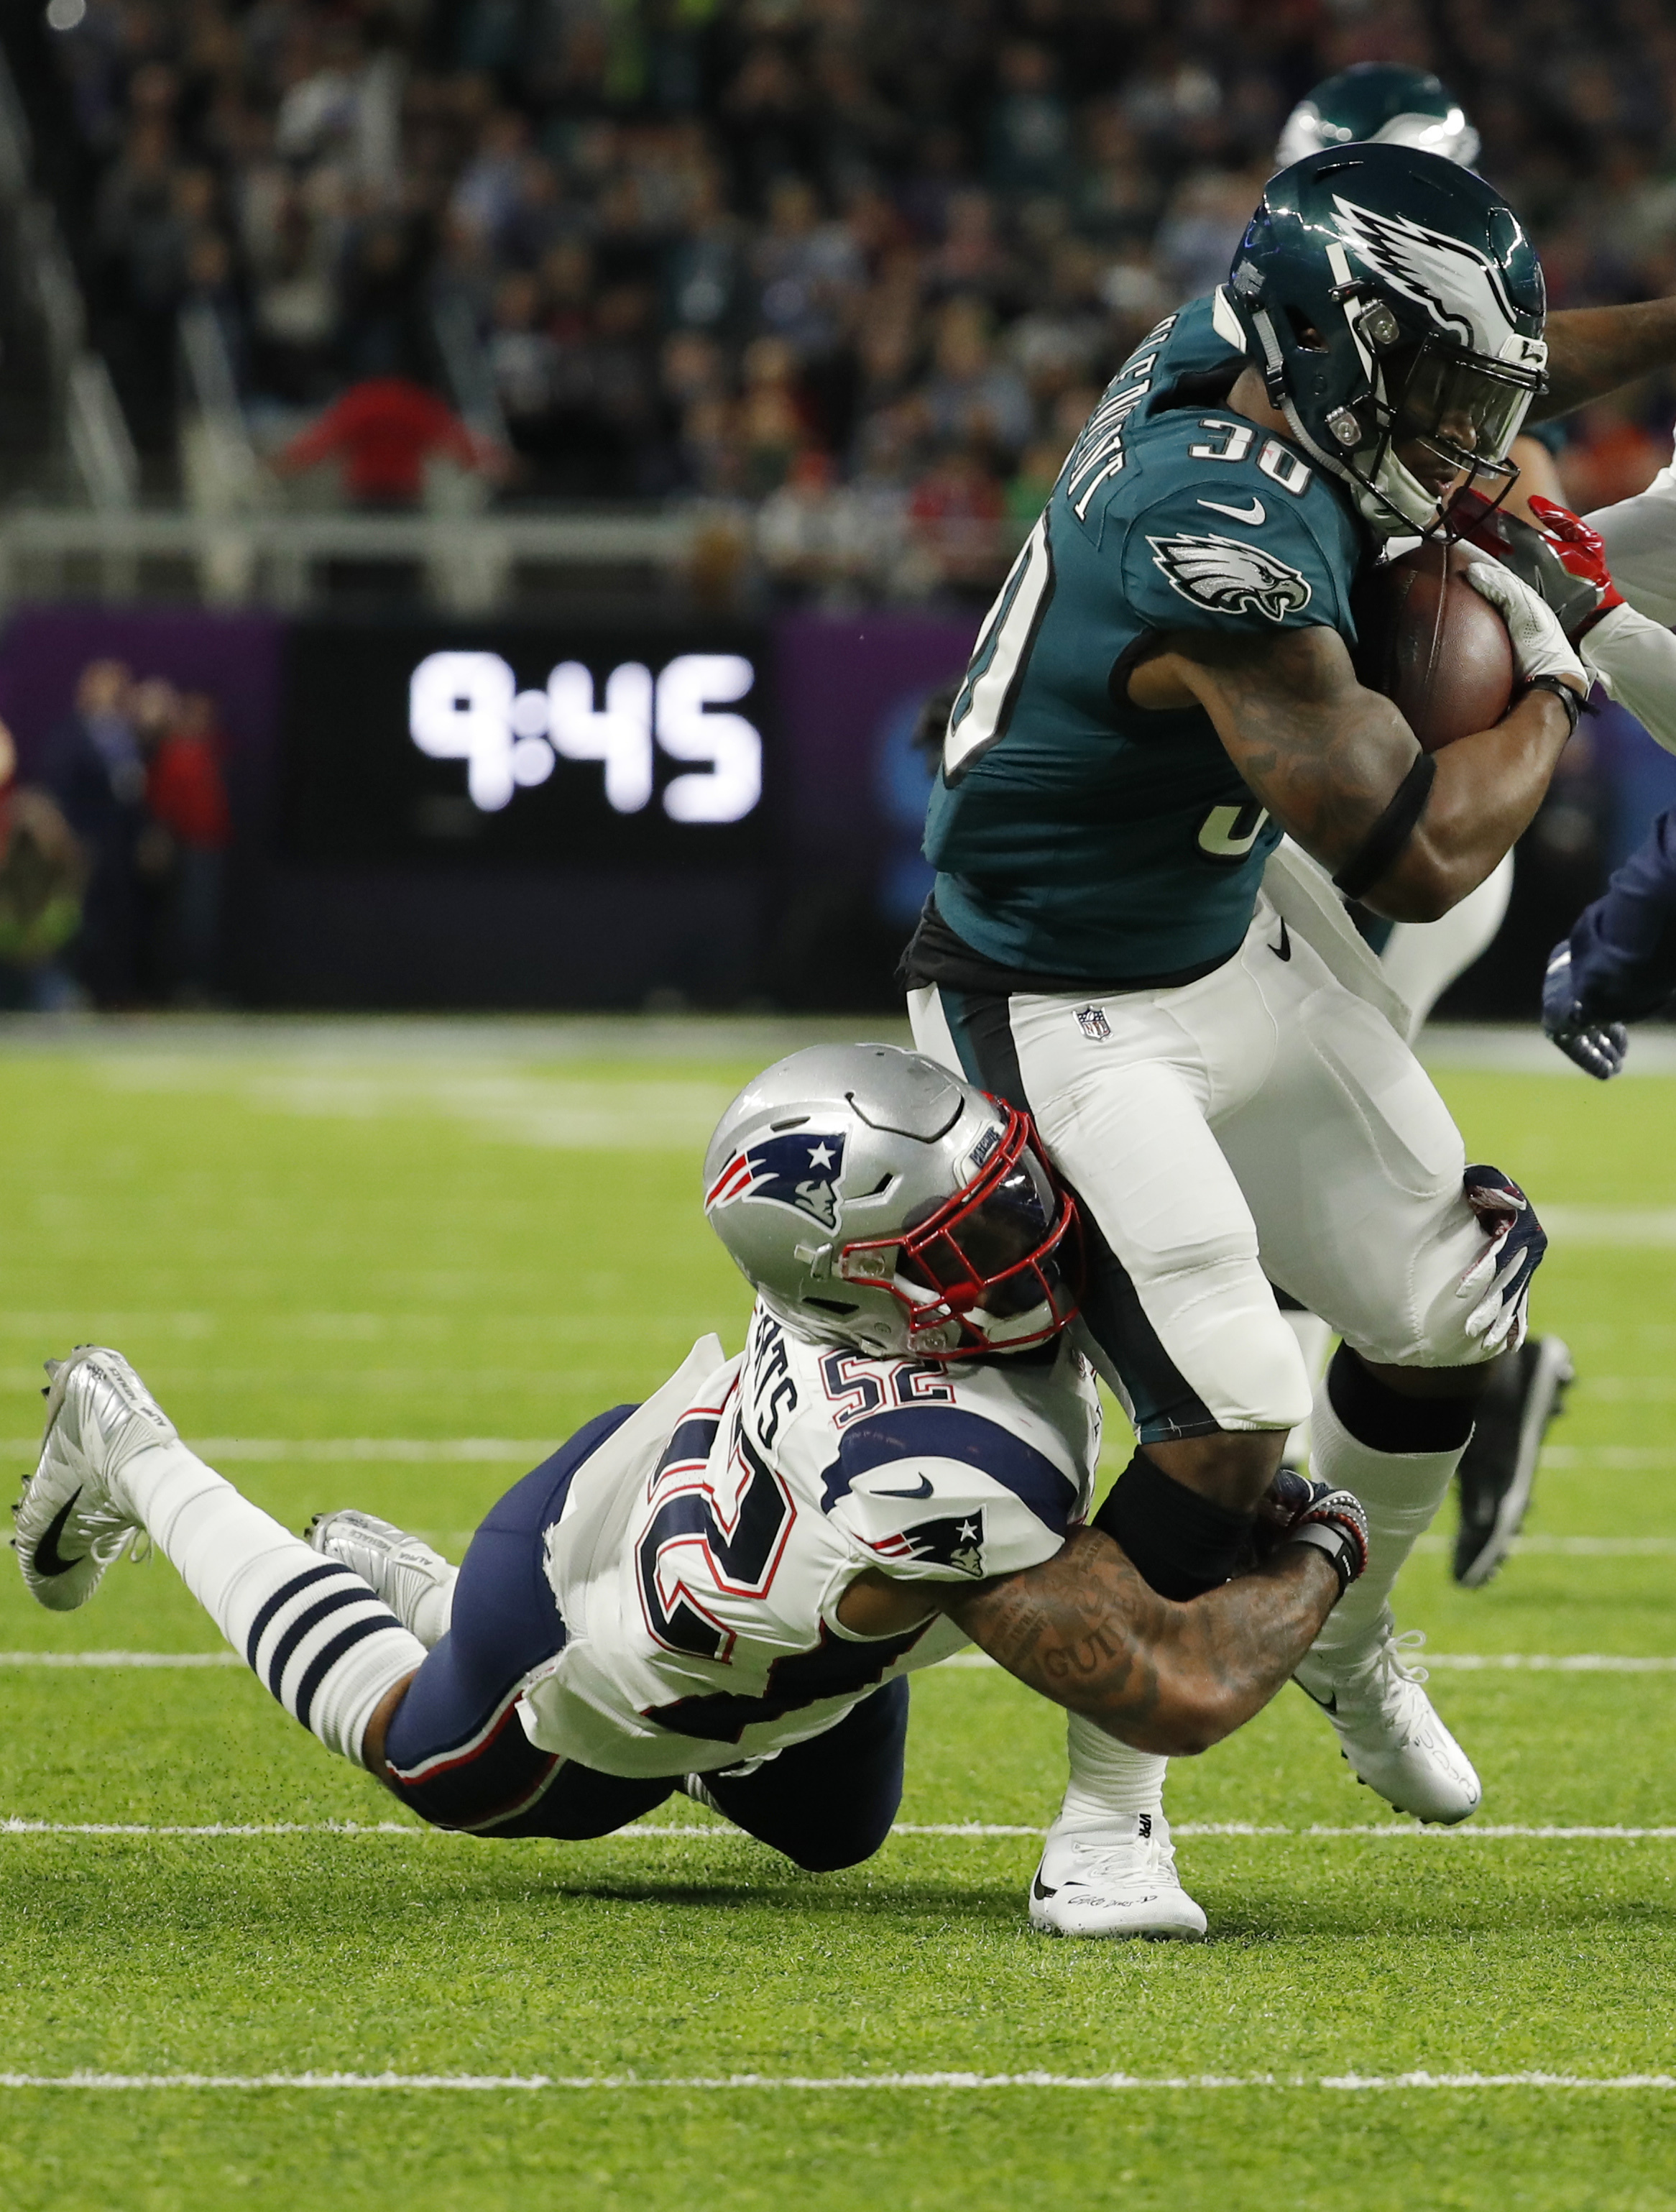 <div class='meta'><div class='origin-logo' data-origin='AP'></div><span class='caption-text' data-credit='AP Photo/Chris O'Meara'>Philadelphia Eagles running back Corey Clement (30) carries the ball, as New England Patriots outside linebacker Elandon Roberts (52) makes the tackle, during the first half.</span></div>